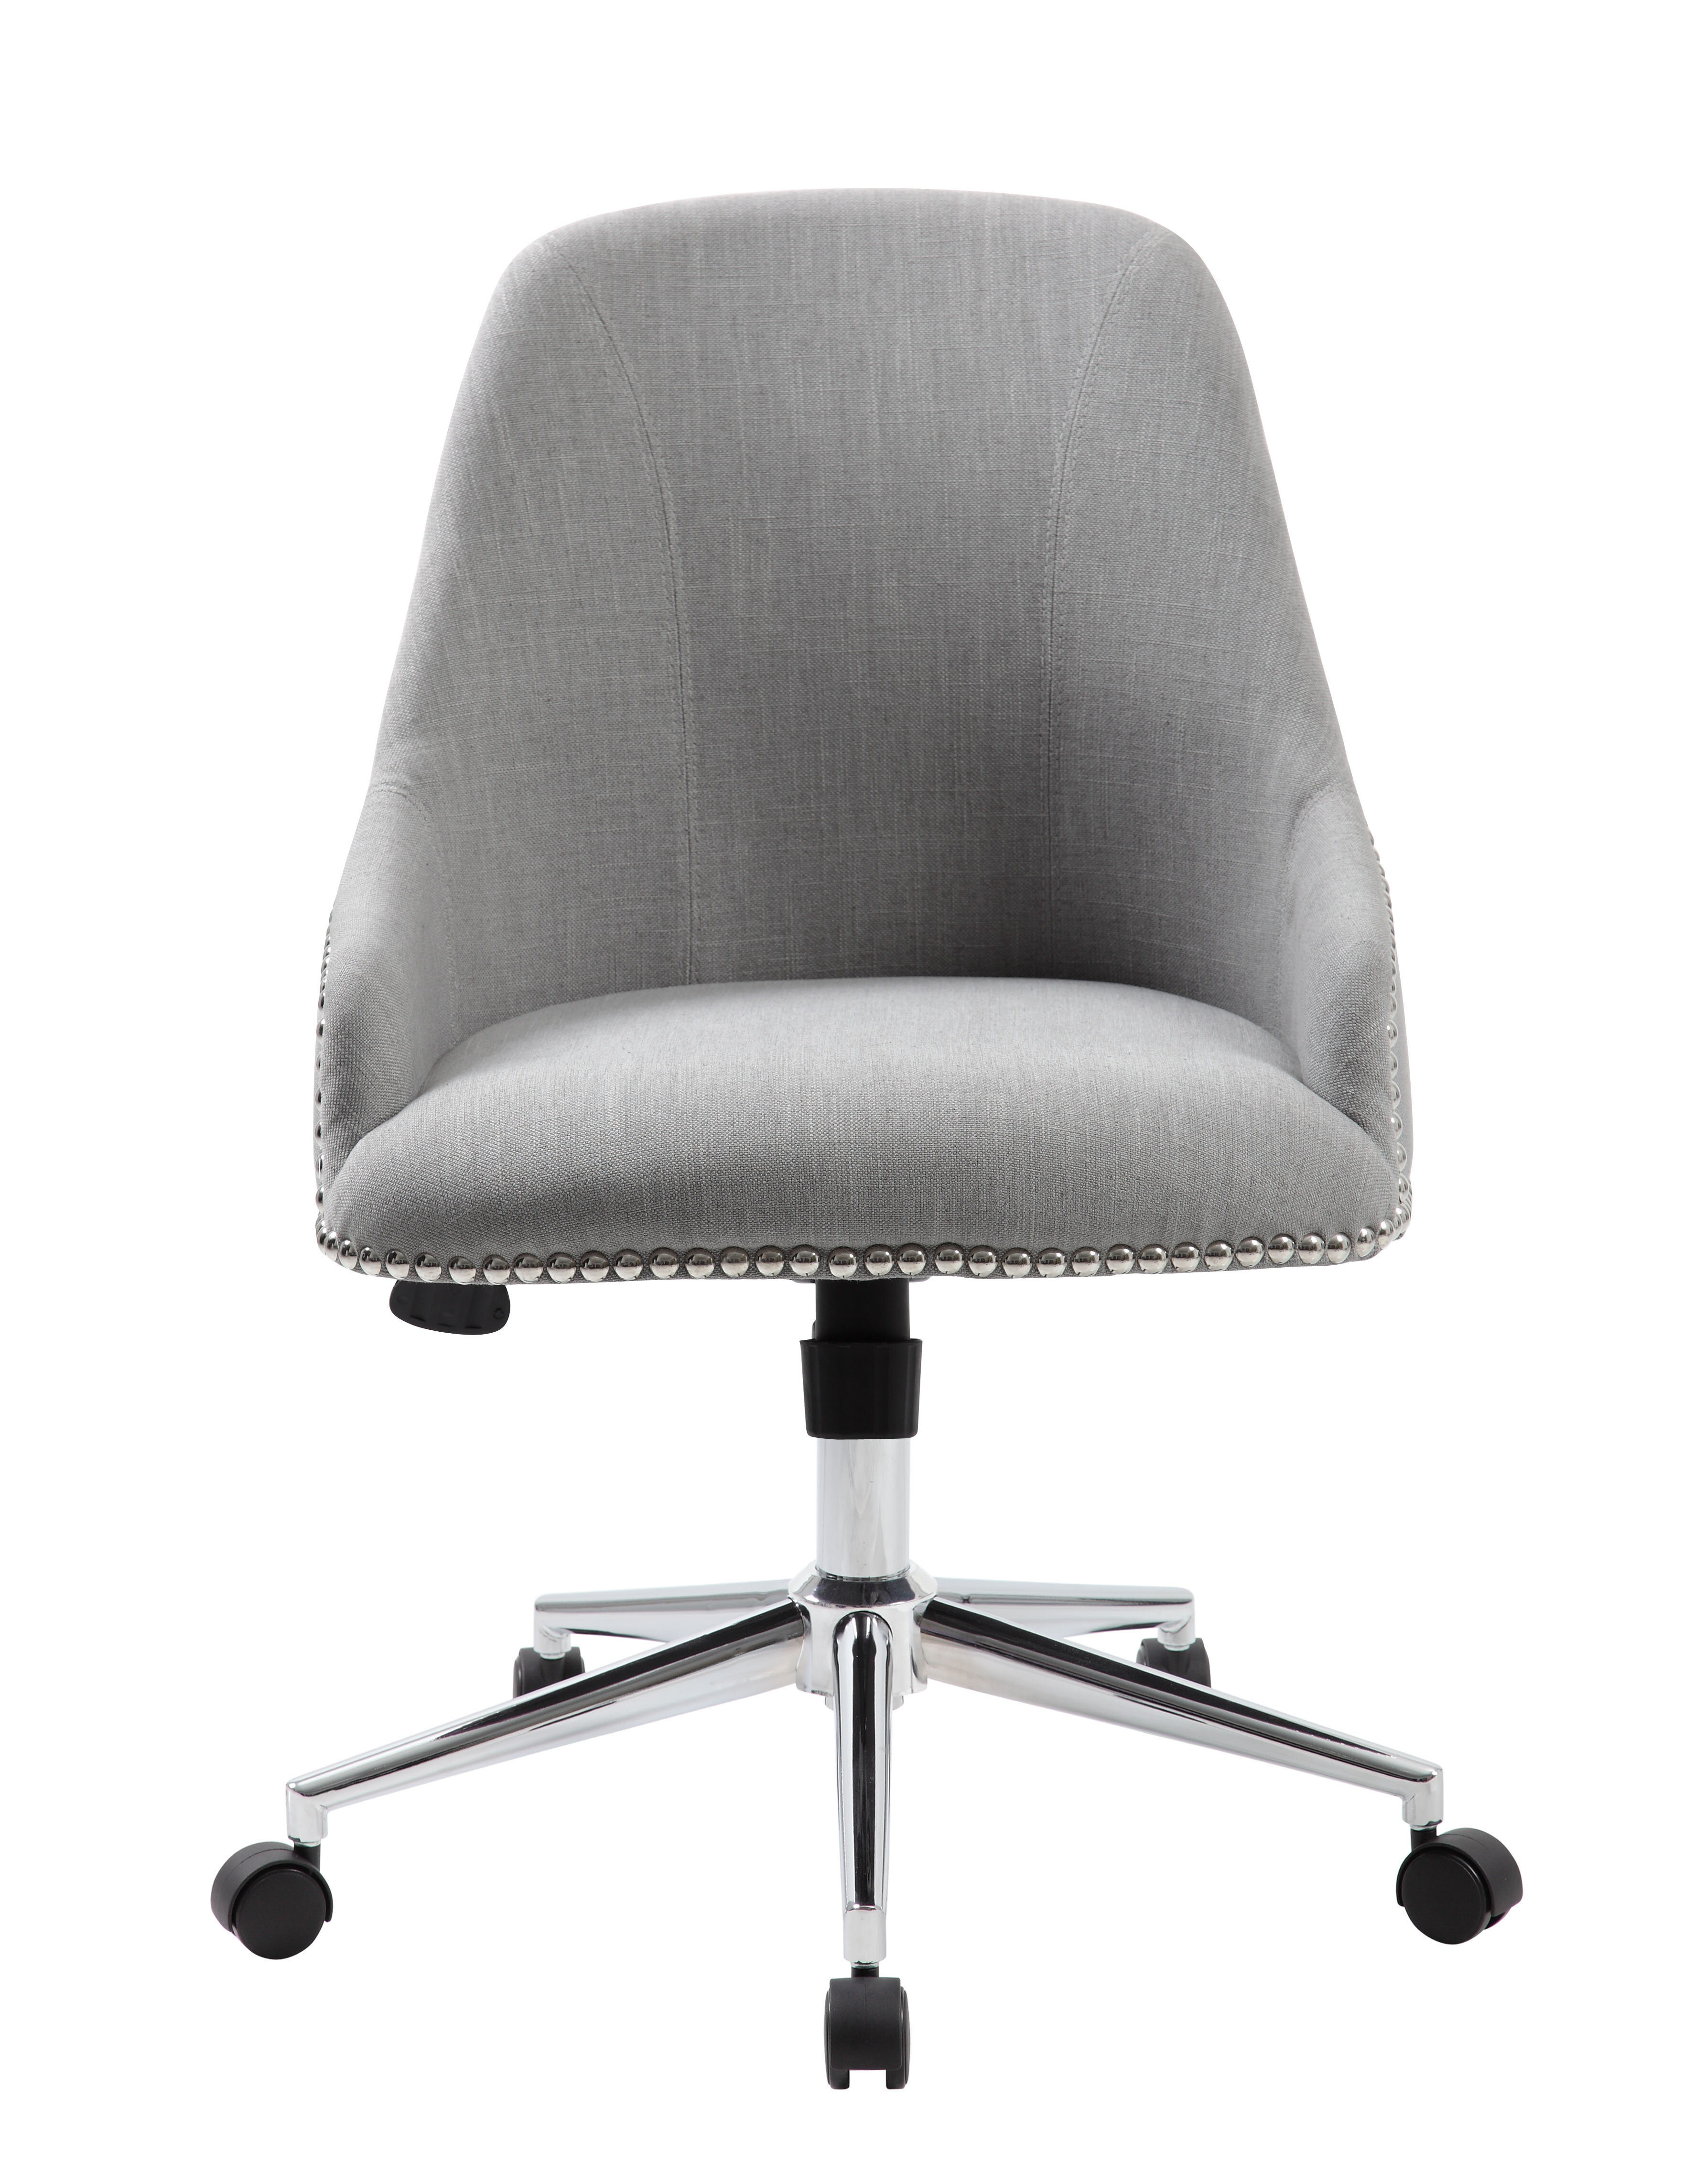 make office chair more comfortable. Make Office Chair More Comfortable